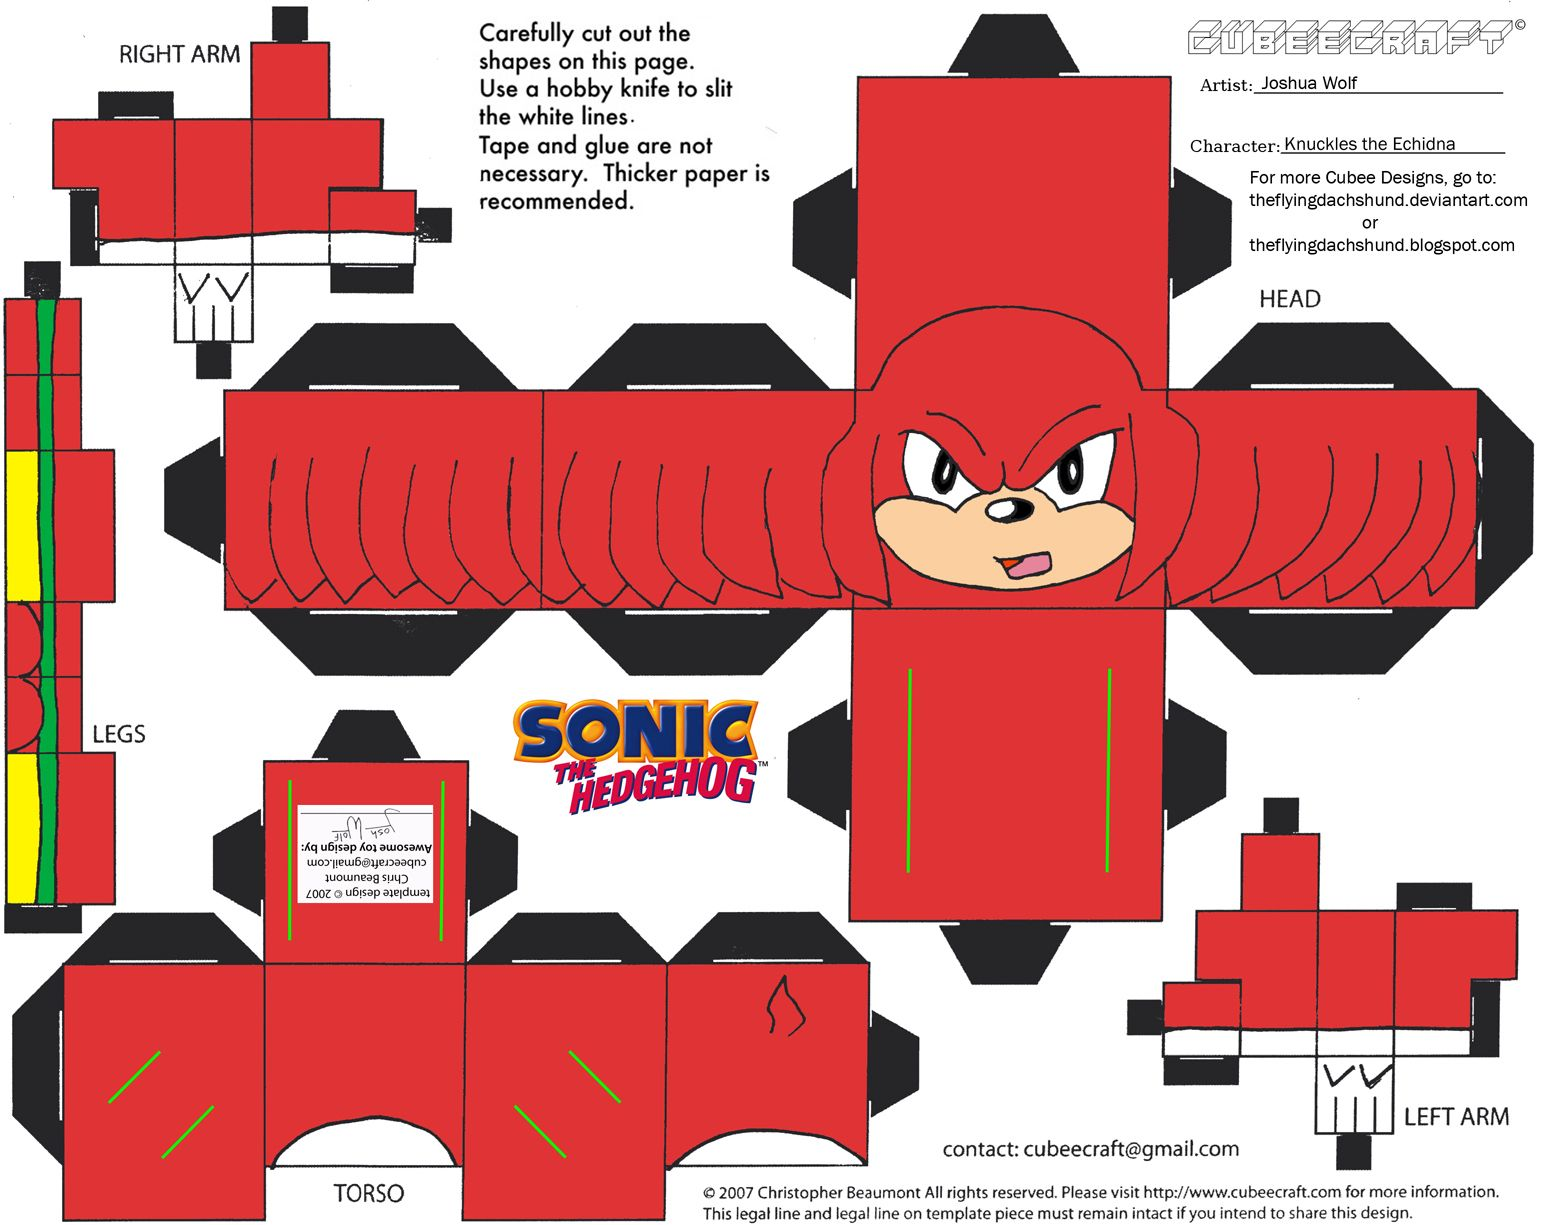 Vg7 Knuckles Cubee By Theflyingdachshund On Deviantart In 2021 Hedgehog Craft Paper Toys Marvel Cross Stitch